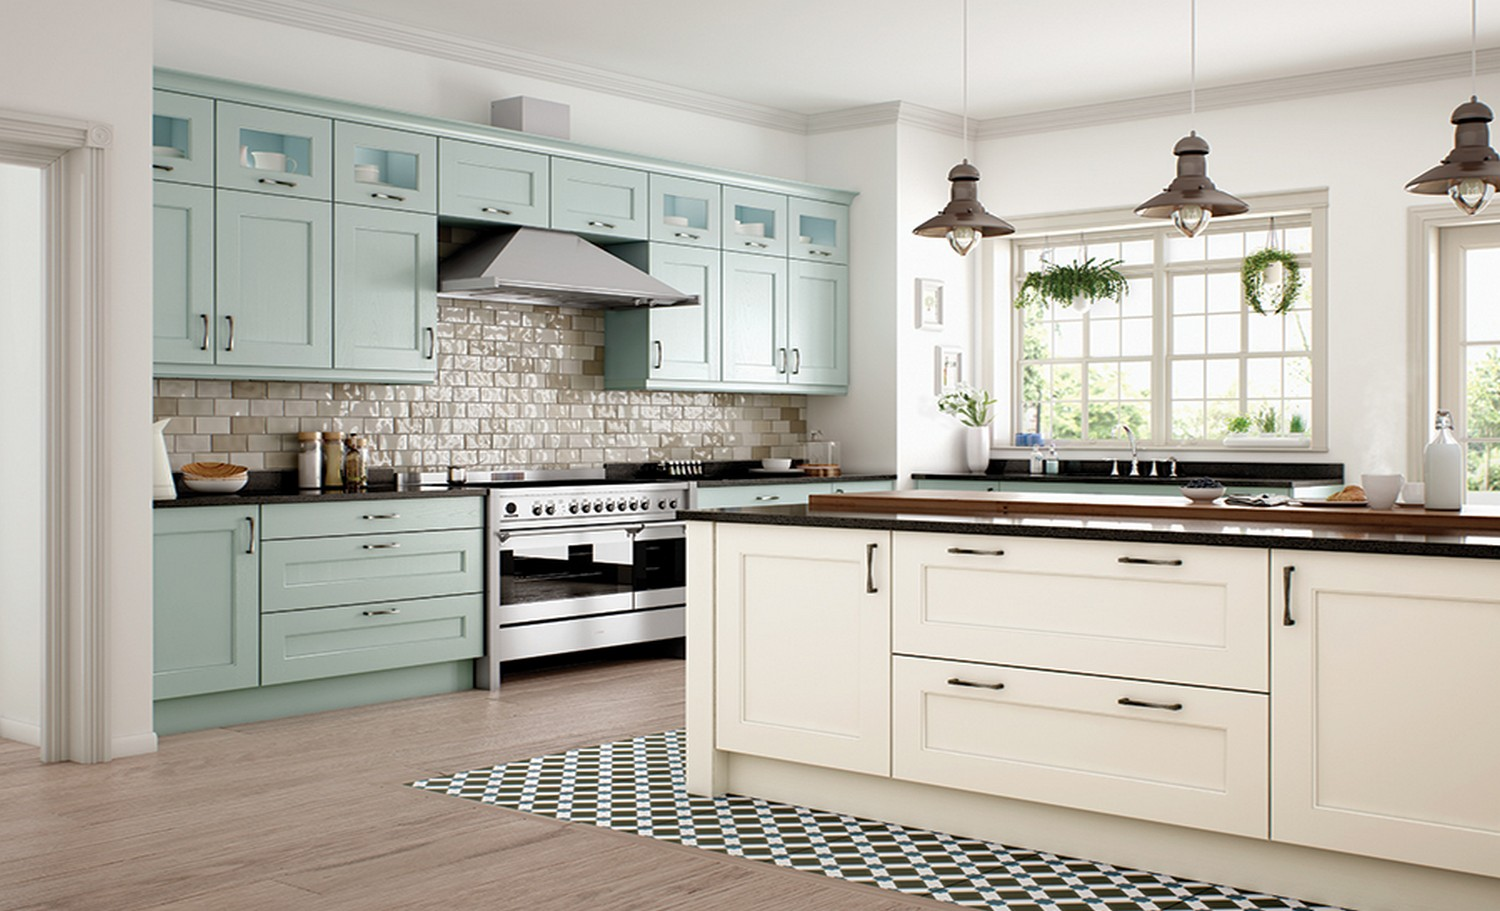 A classic Ivory and powder blue shaker kitchen design with black granite worktops and large extraction hood.